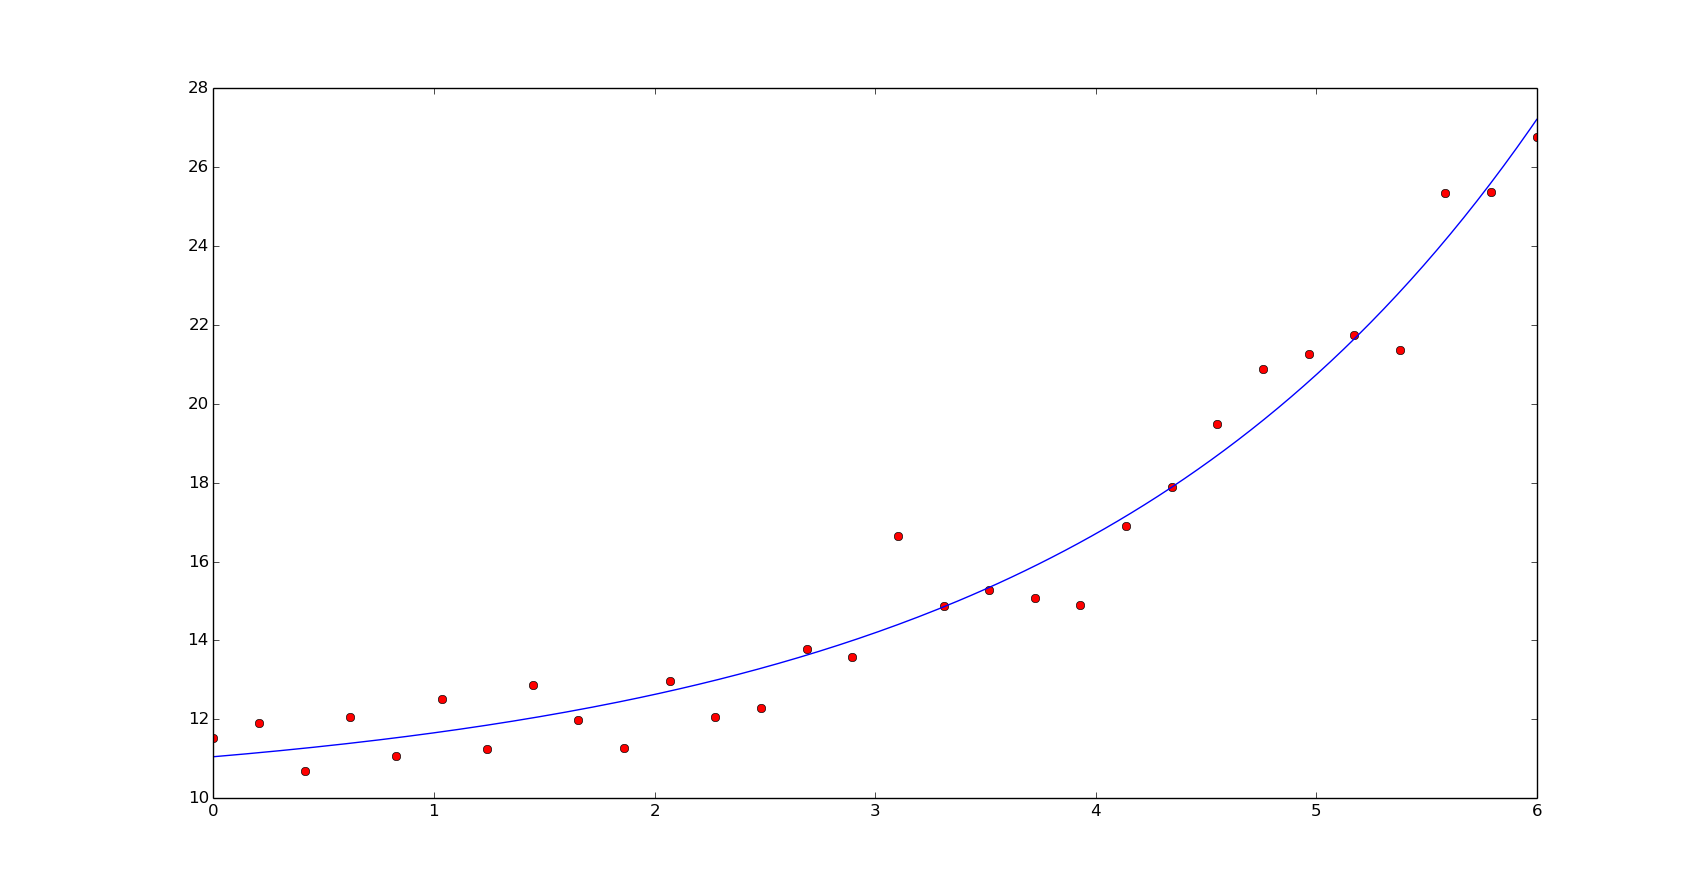 Least squares fitting with Numpy and Scipy